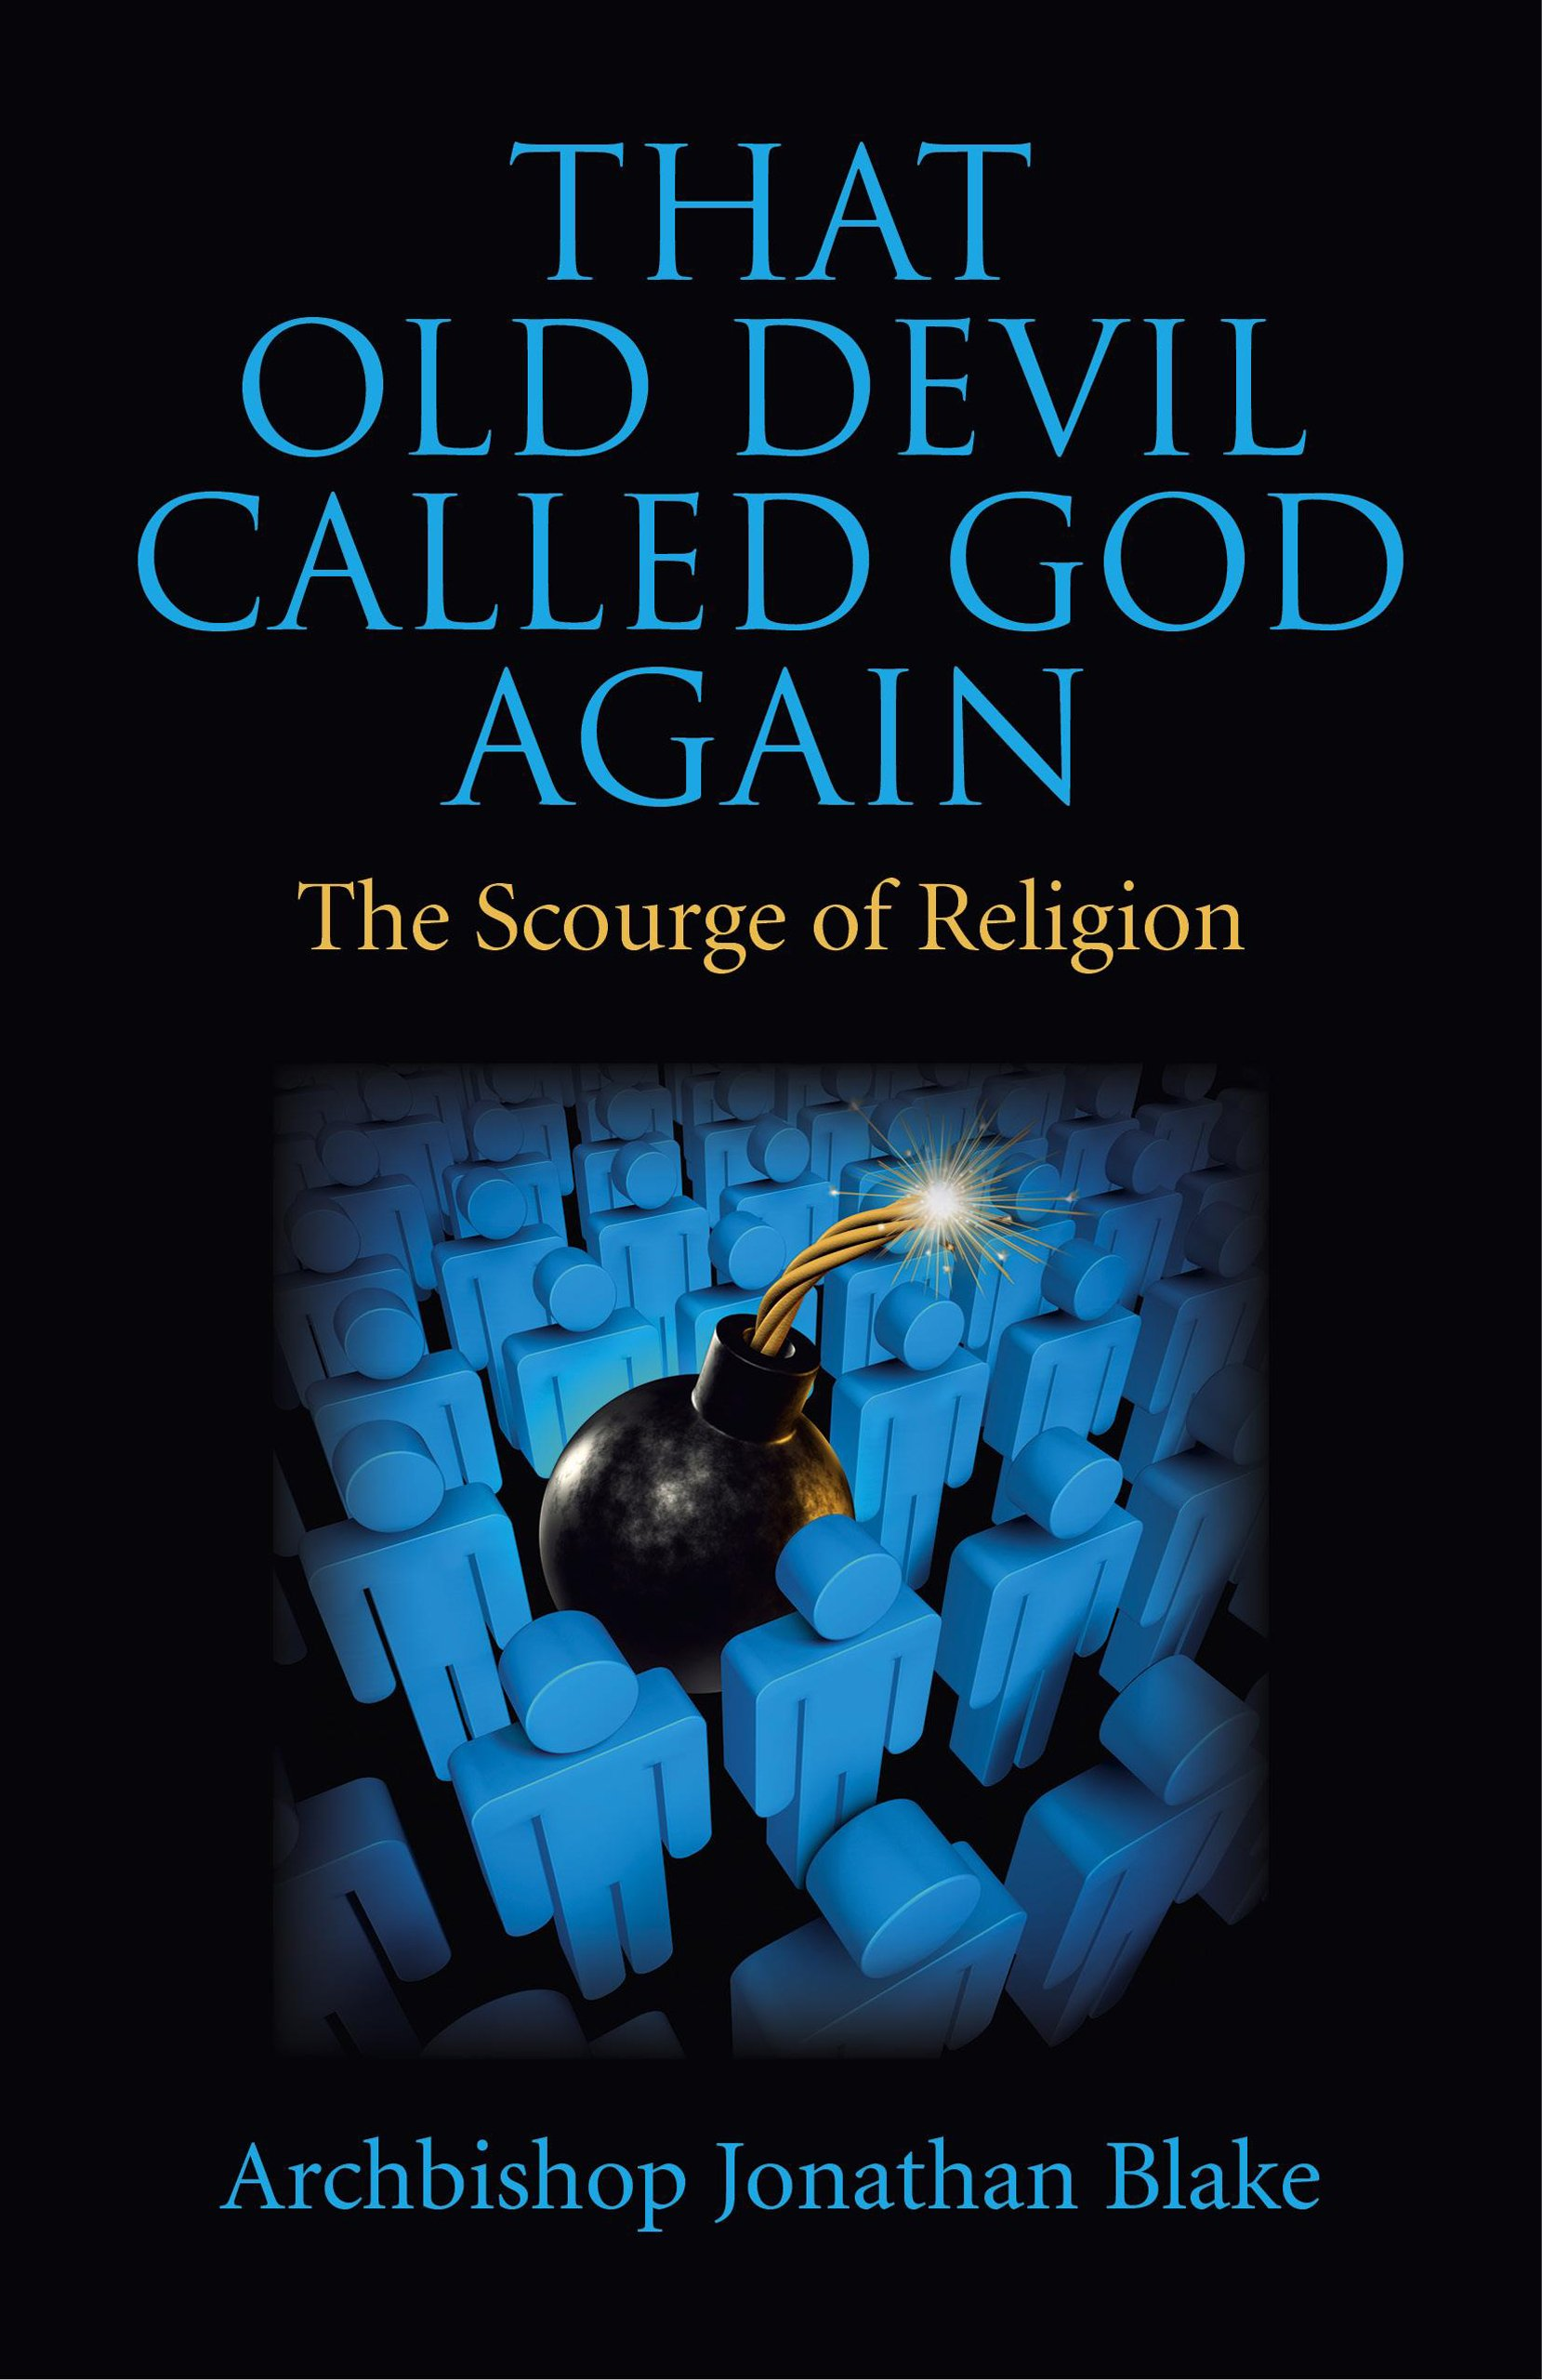 Book review: That Old Devil Called God Again